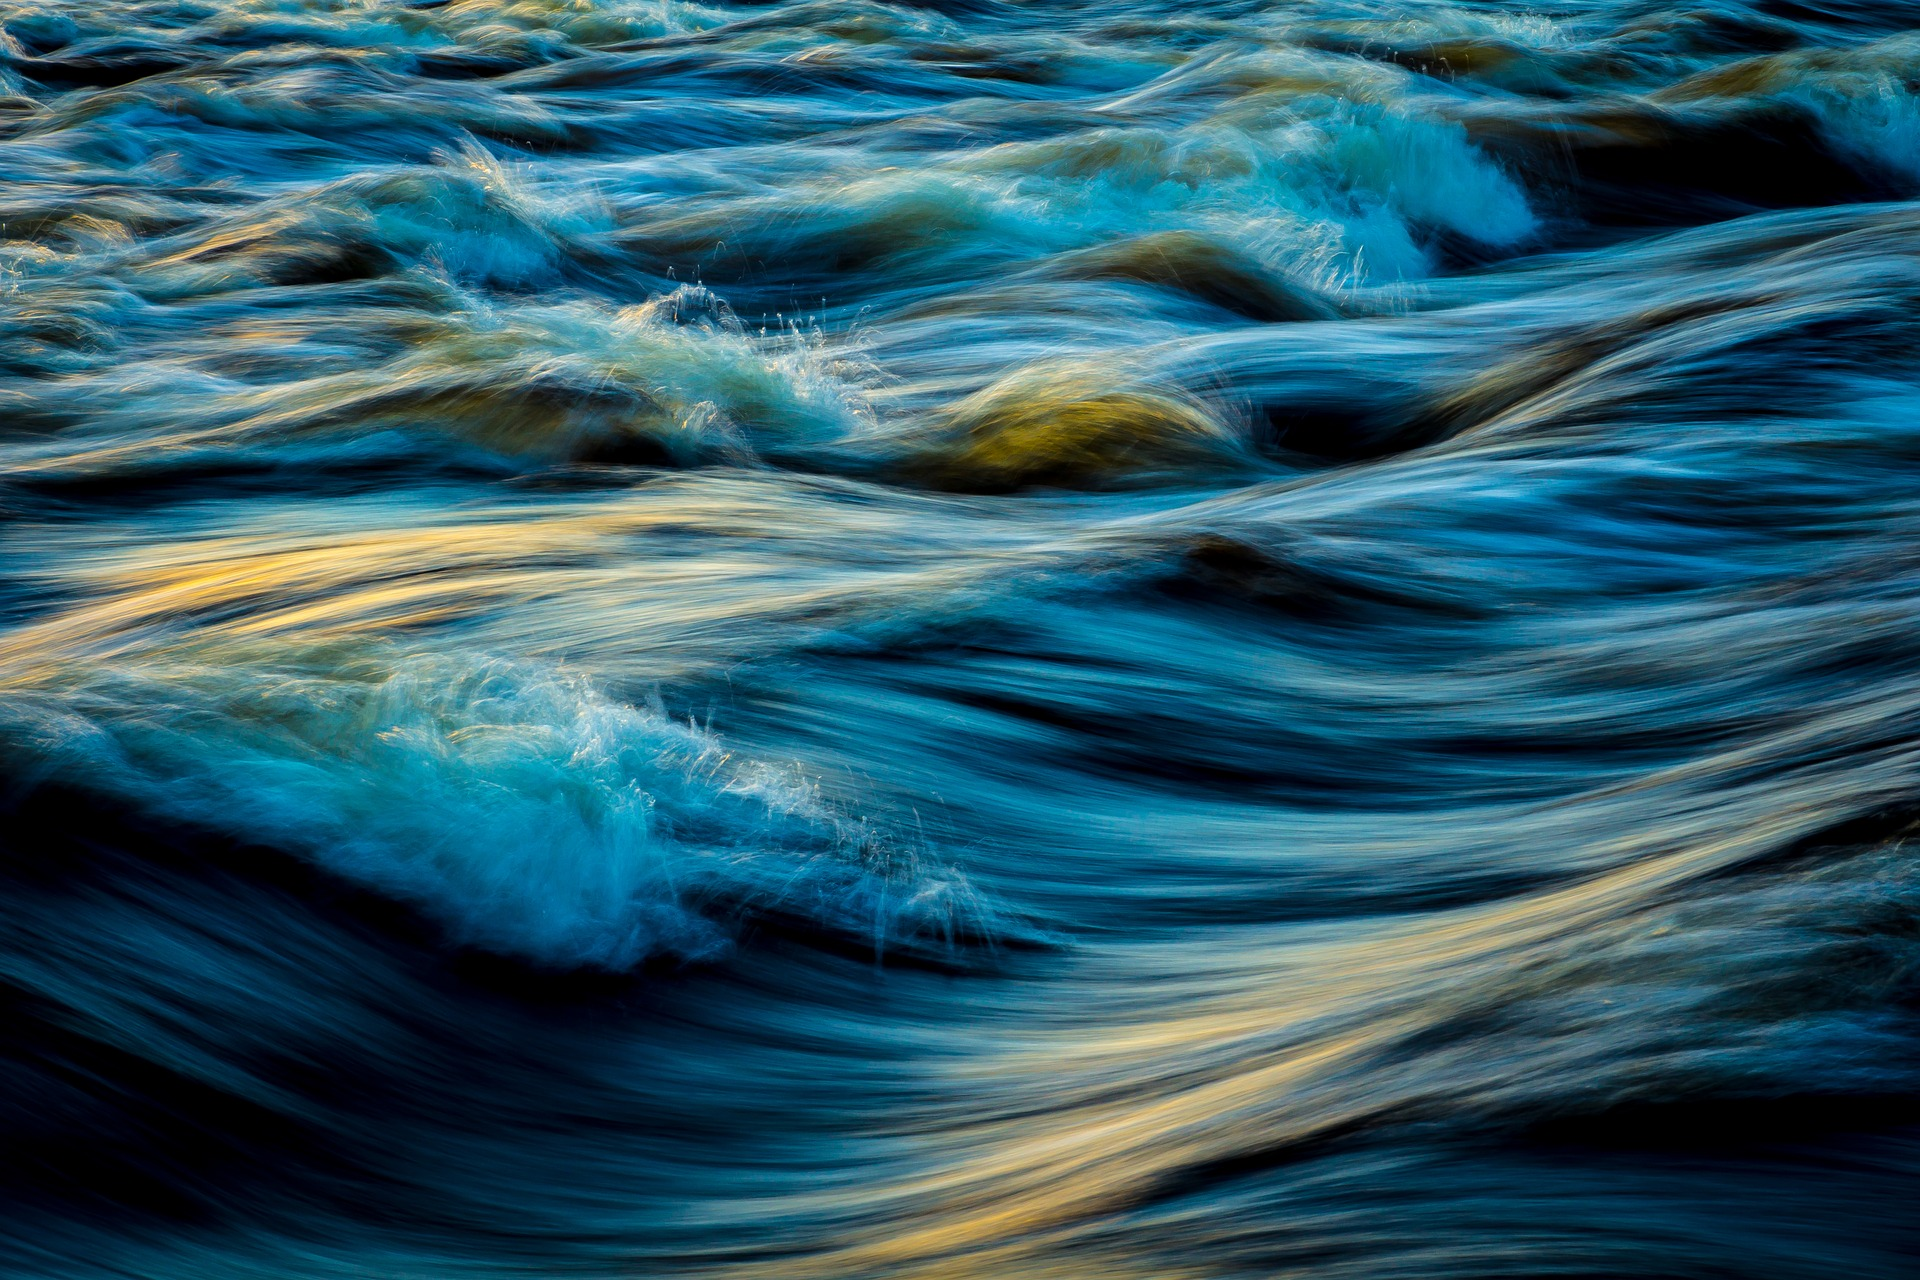 water-2130047_1920